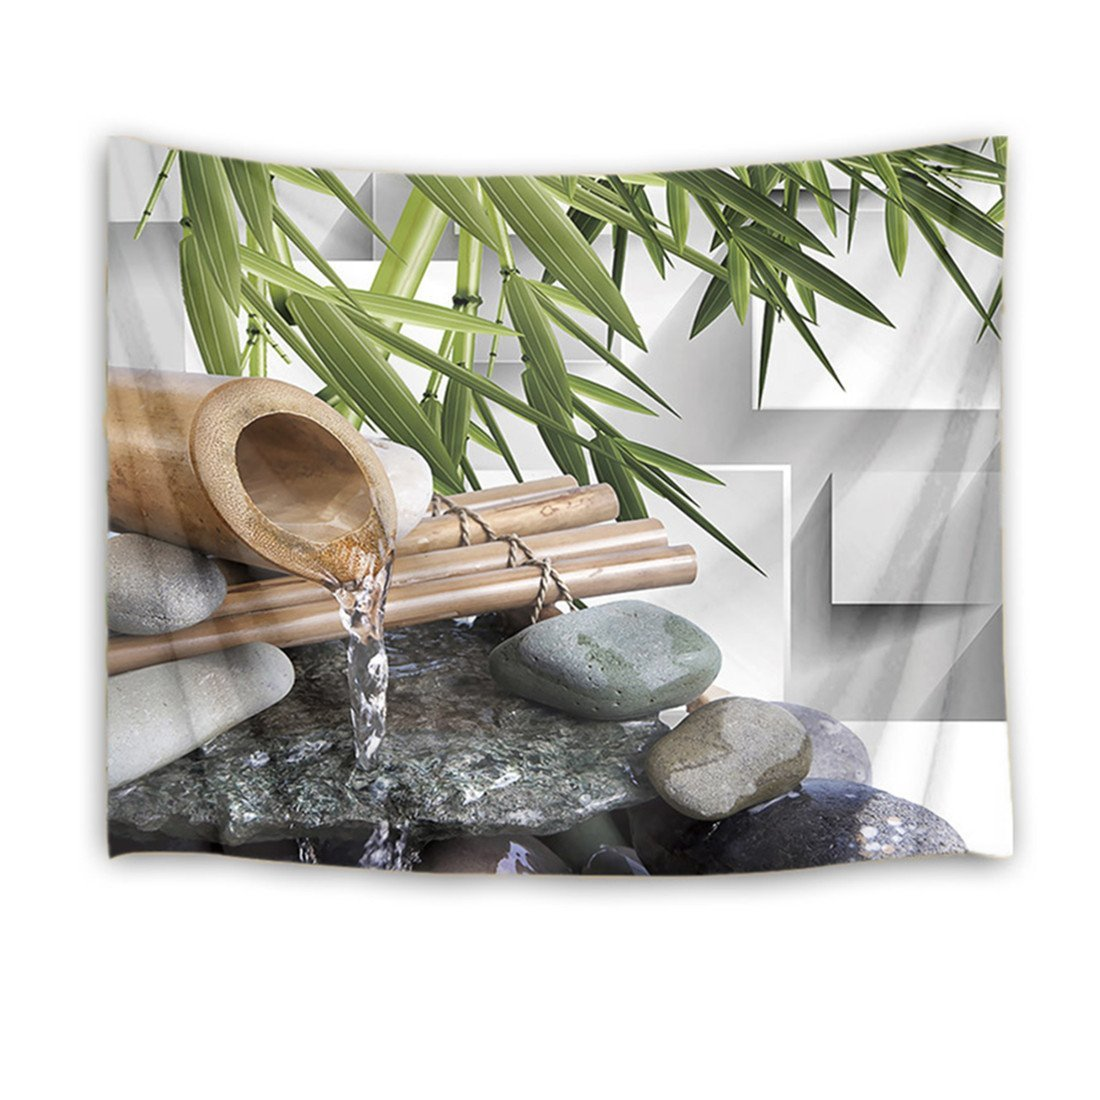 LB Zen Spa Water Tapestry Wall Hanging,Garden Bamboo Leaves Round Stones 3D Printing Tapestries Wall Decor for Dorm Bedroom Living Room,60 W X 40 H INCH(White)